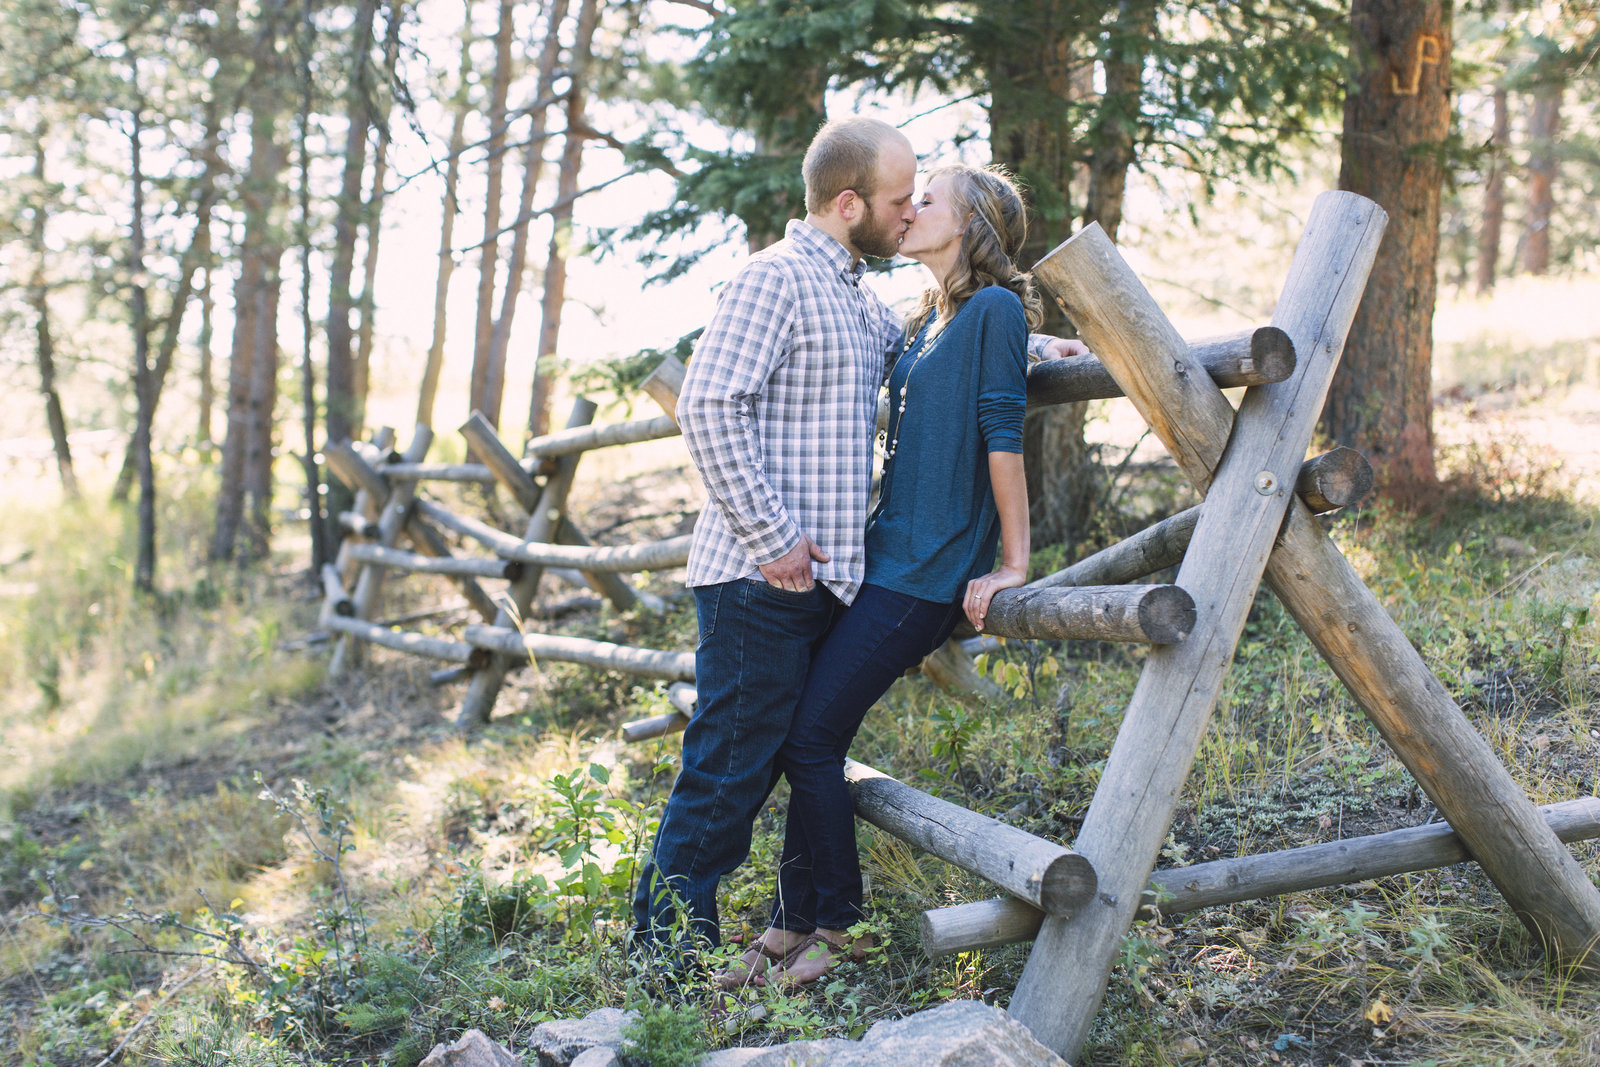 Jessi-And-Zach-Photography-Colorado-Wedding-Photographer-Nevada-Wedding-Photographer-Nevada-Engagement-Photographer_24